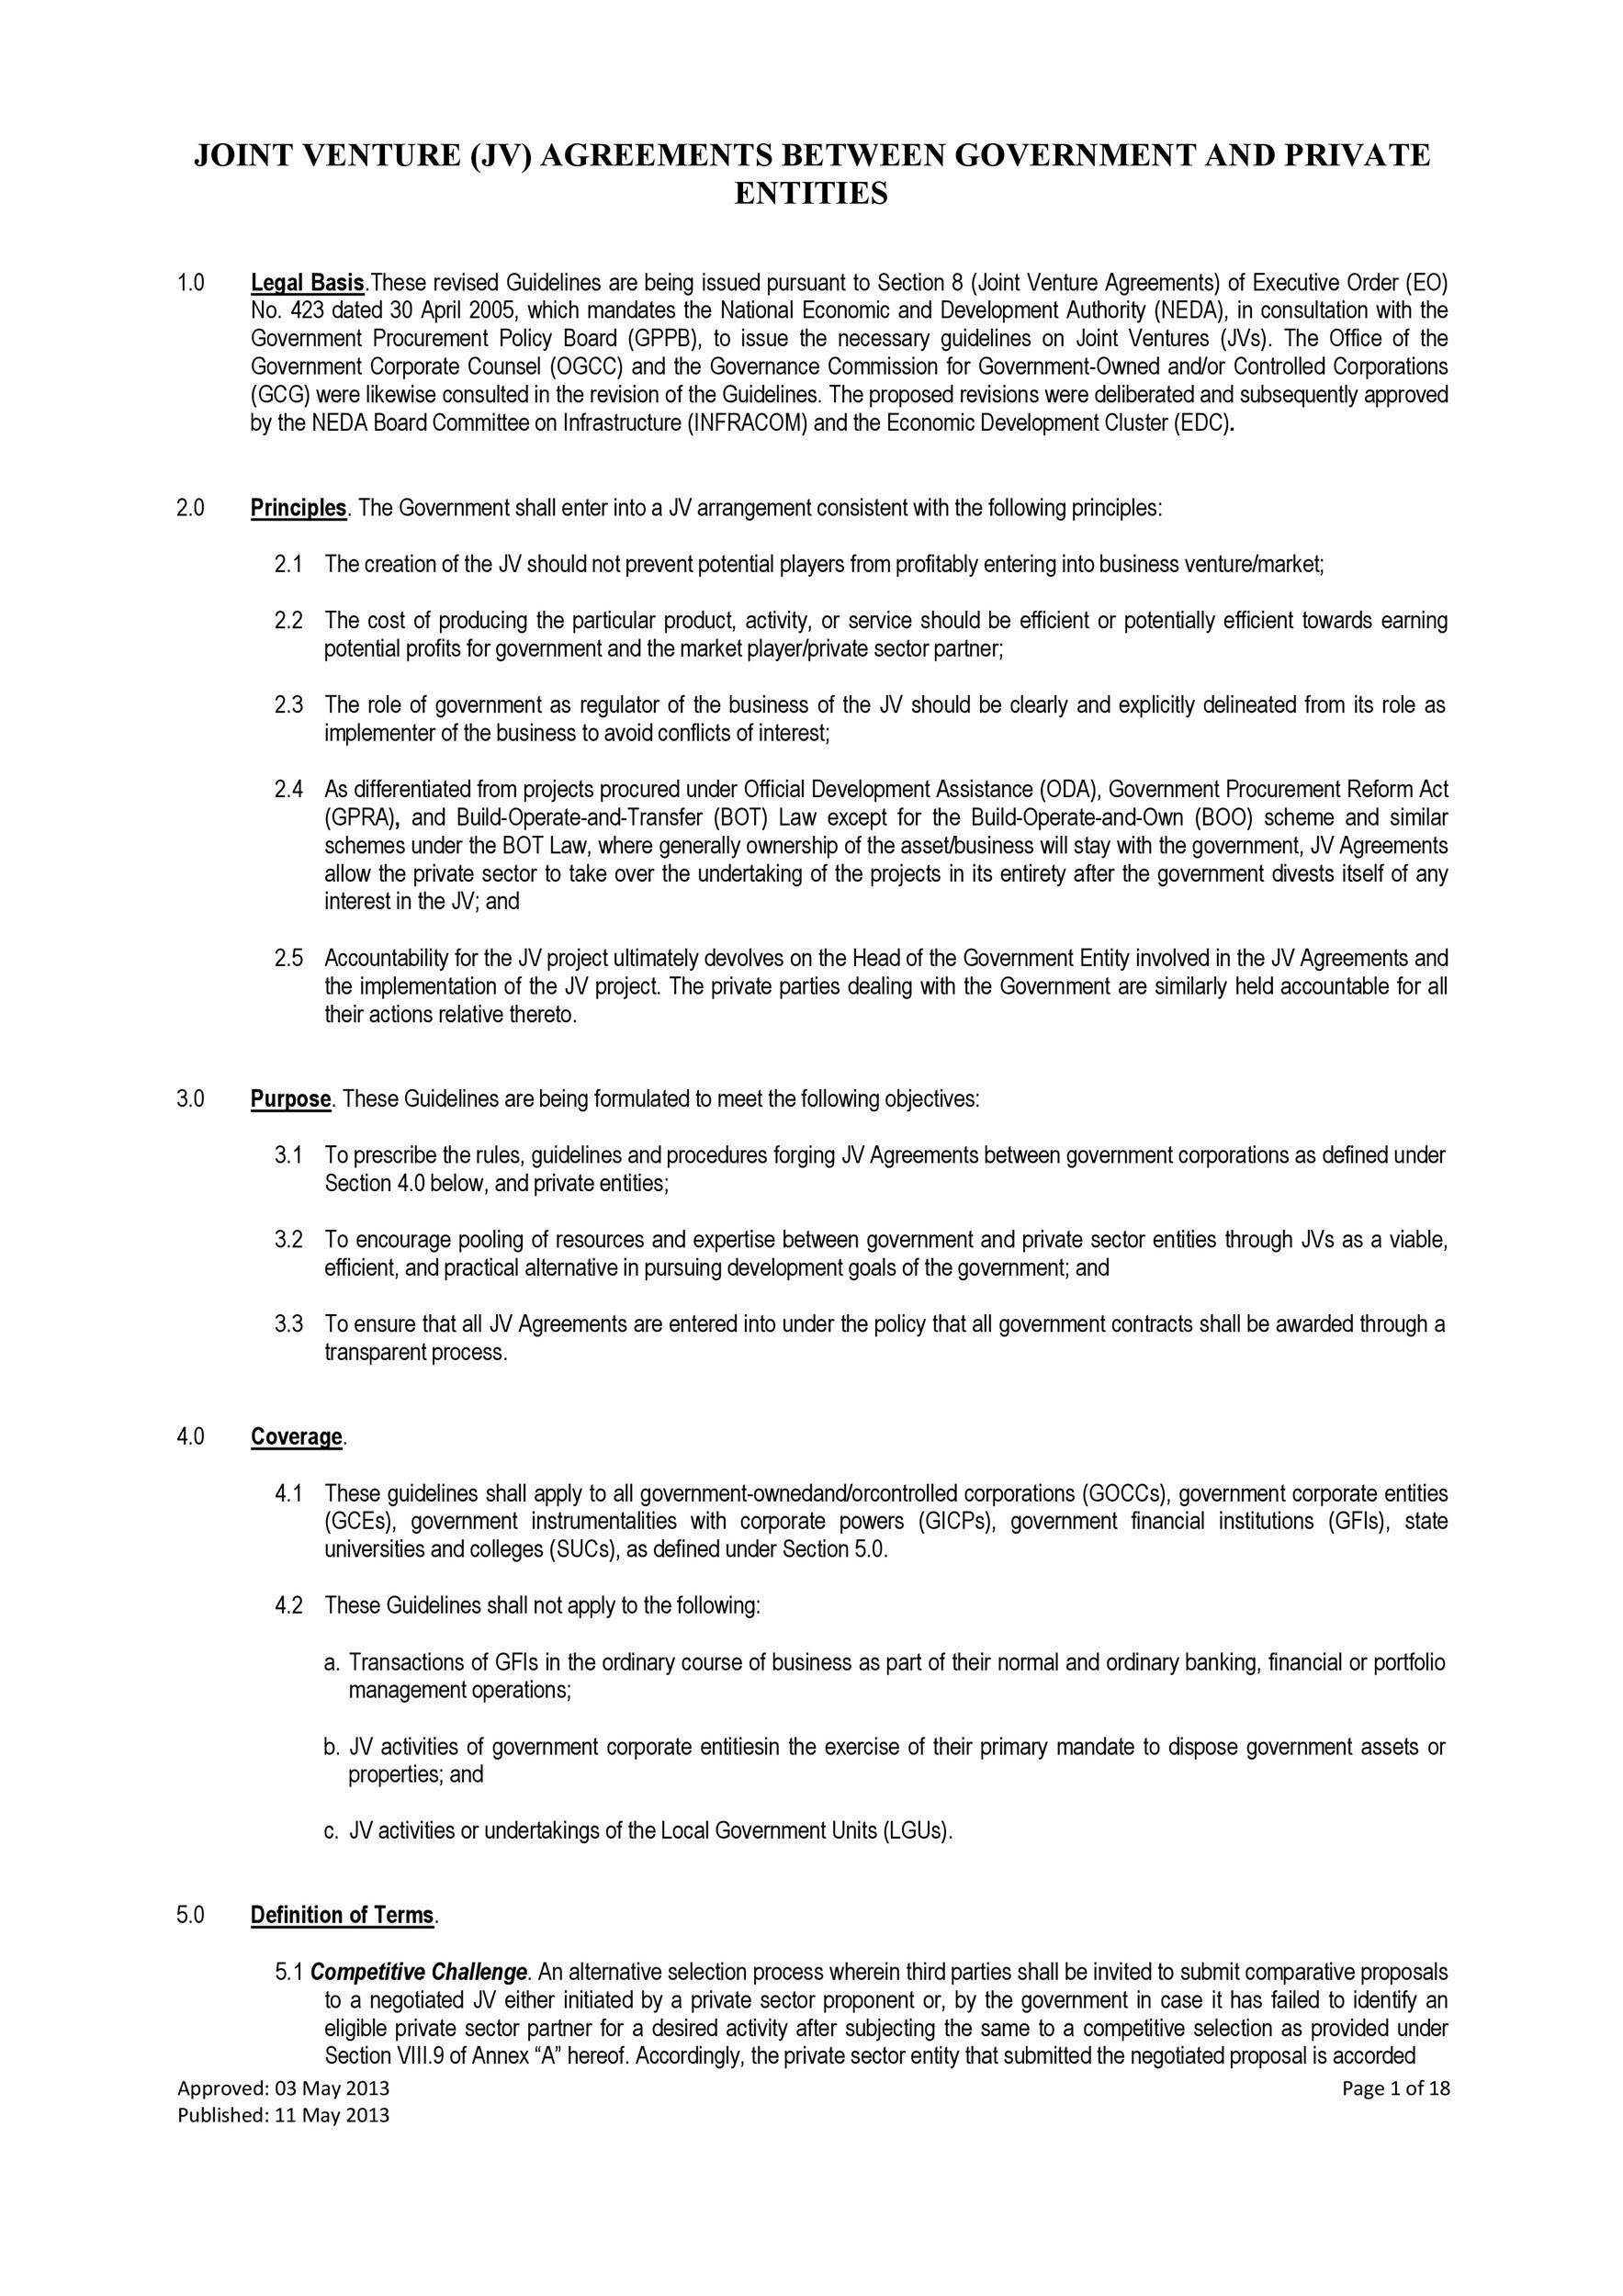 Free Joint Venture Agreement Template 44